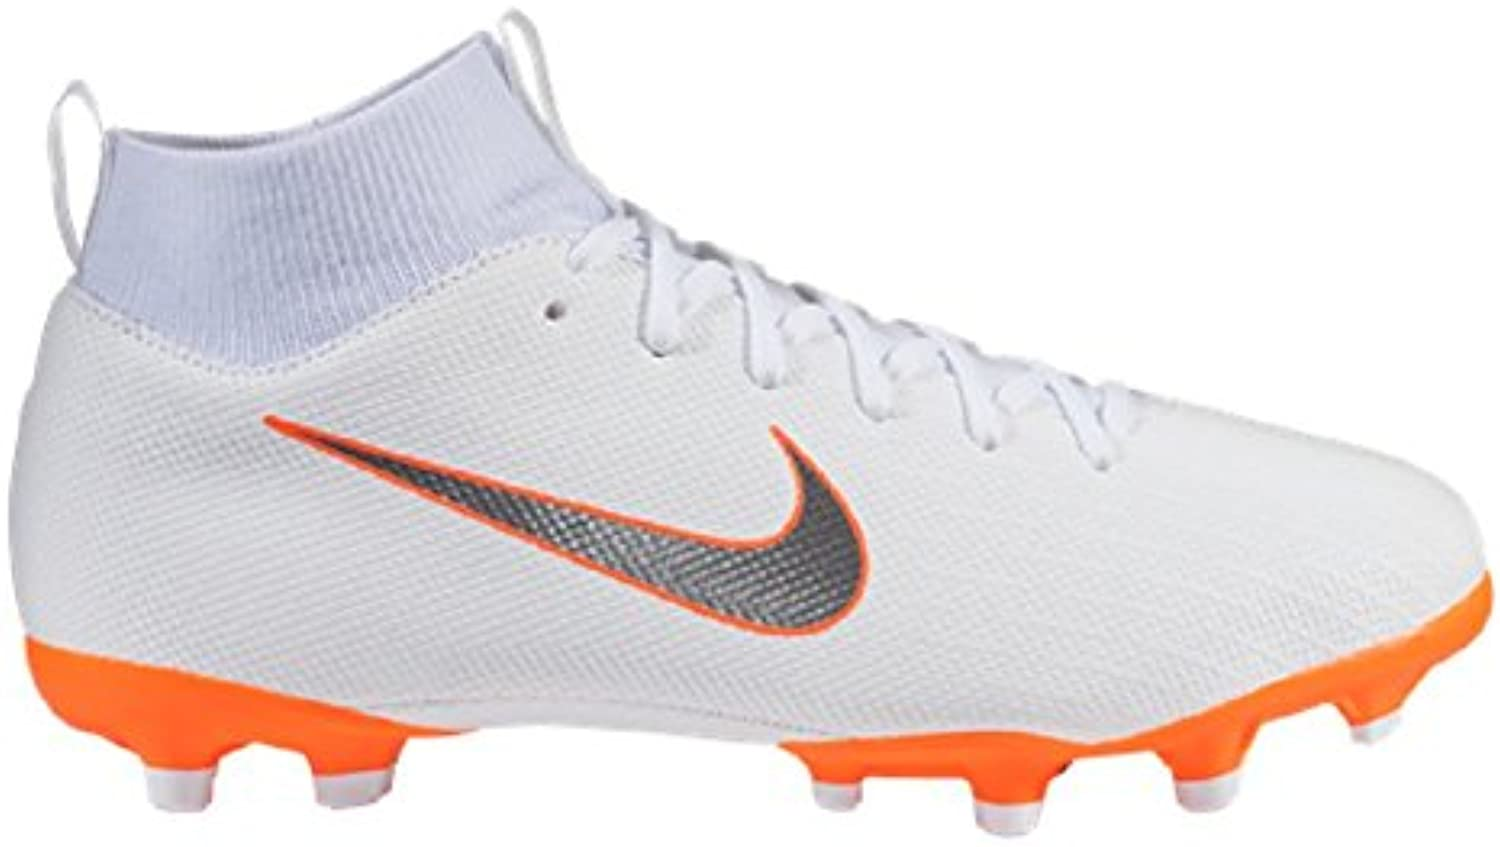 Nike Bota Mercurial Superfly VI Academy MG Junior Talla 33.5 JR, Color Blanco, Naranja Flúor